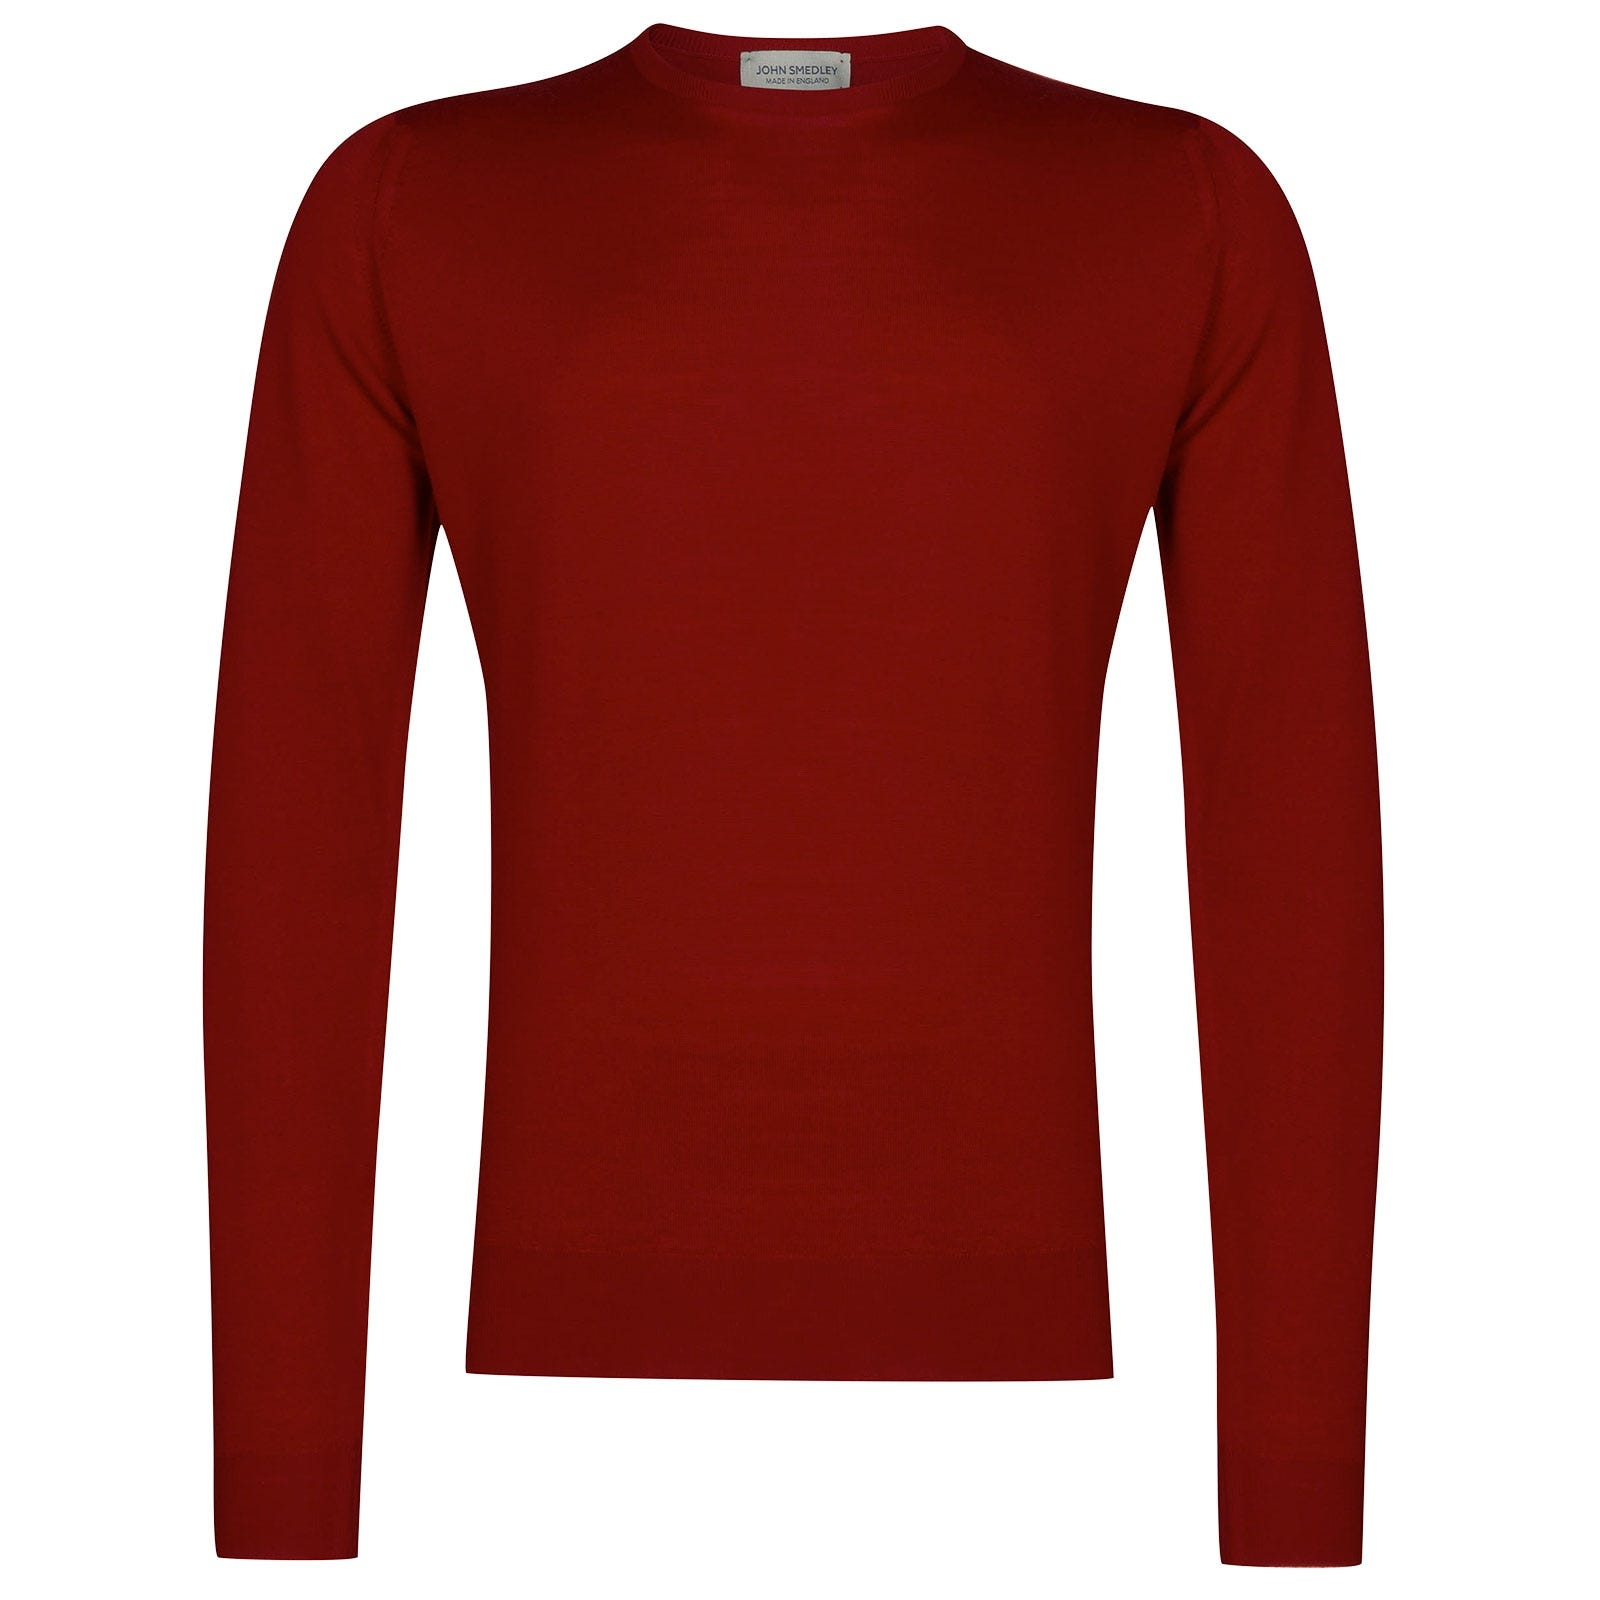 John Smedley Lundy Merino Wool Pullover in Thermal Red-L